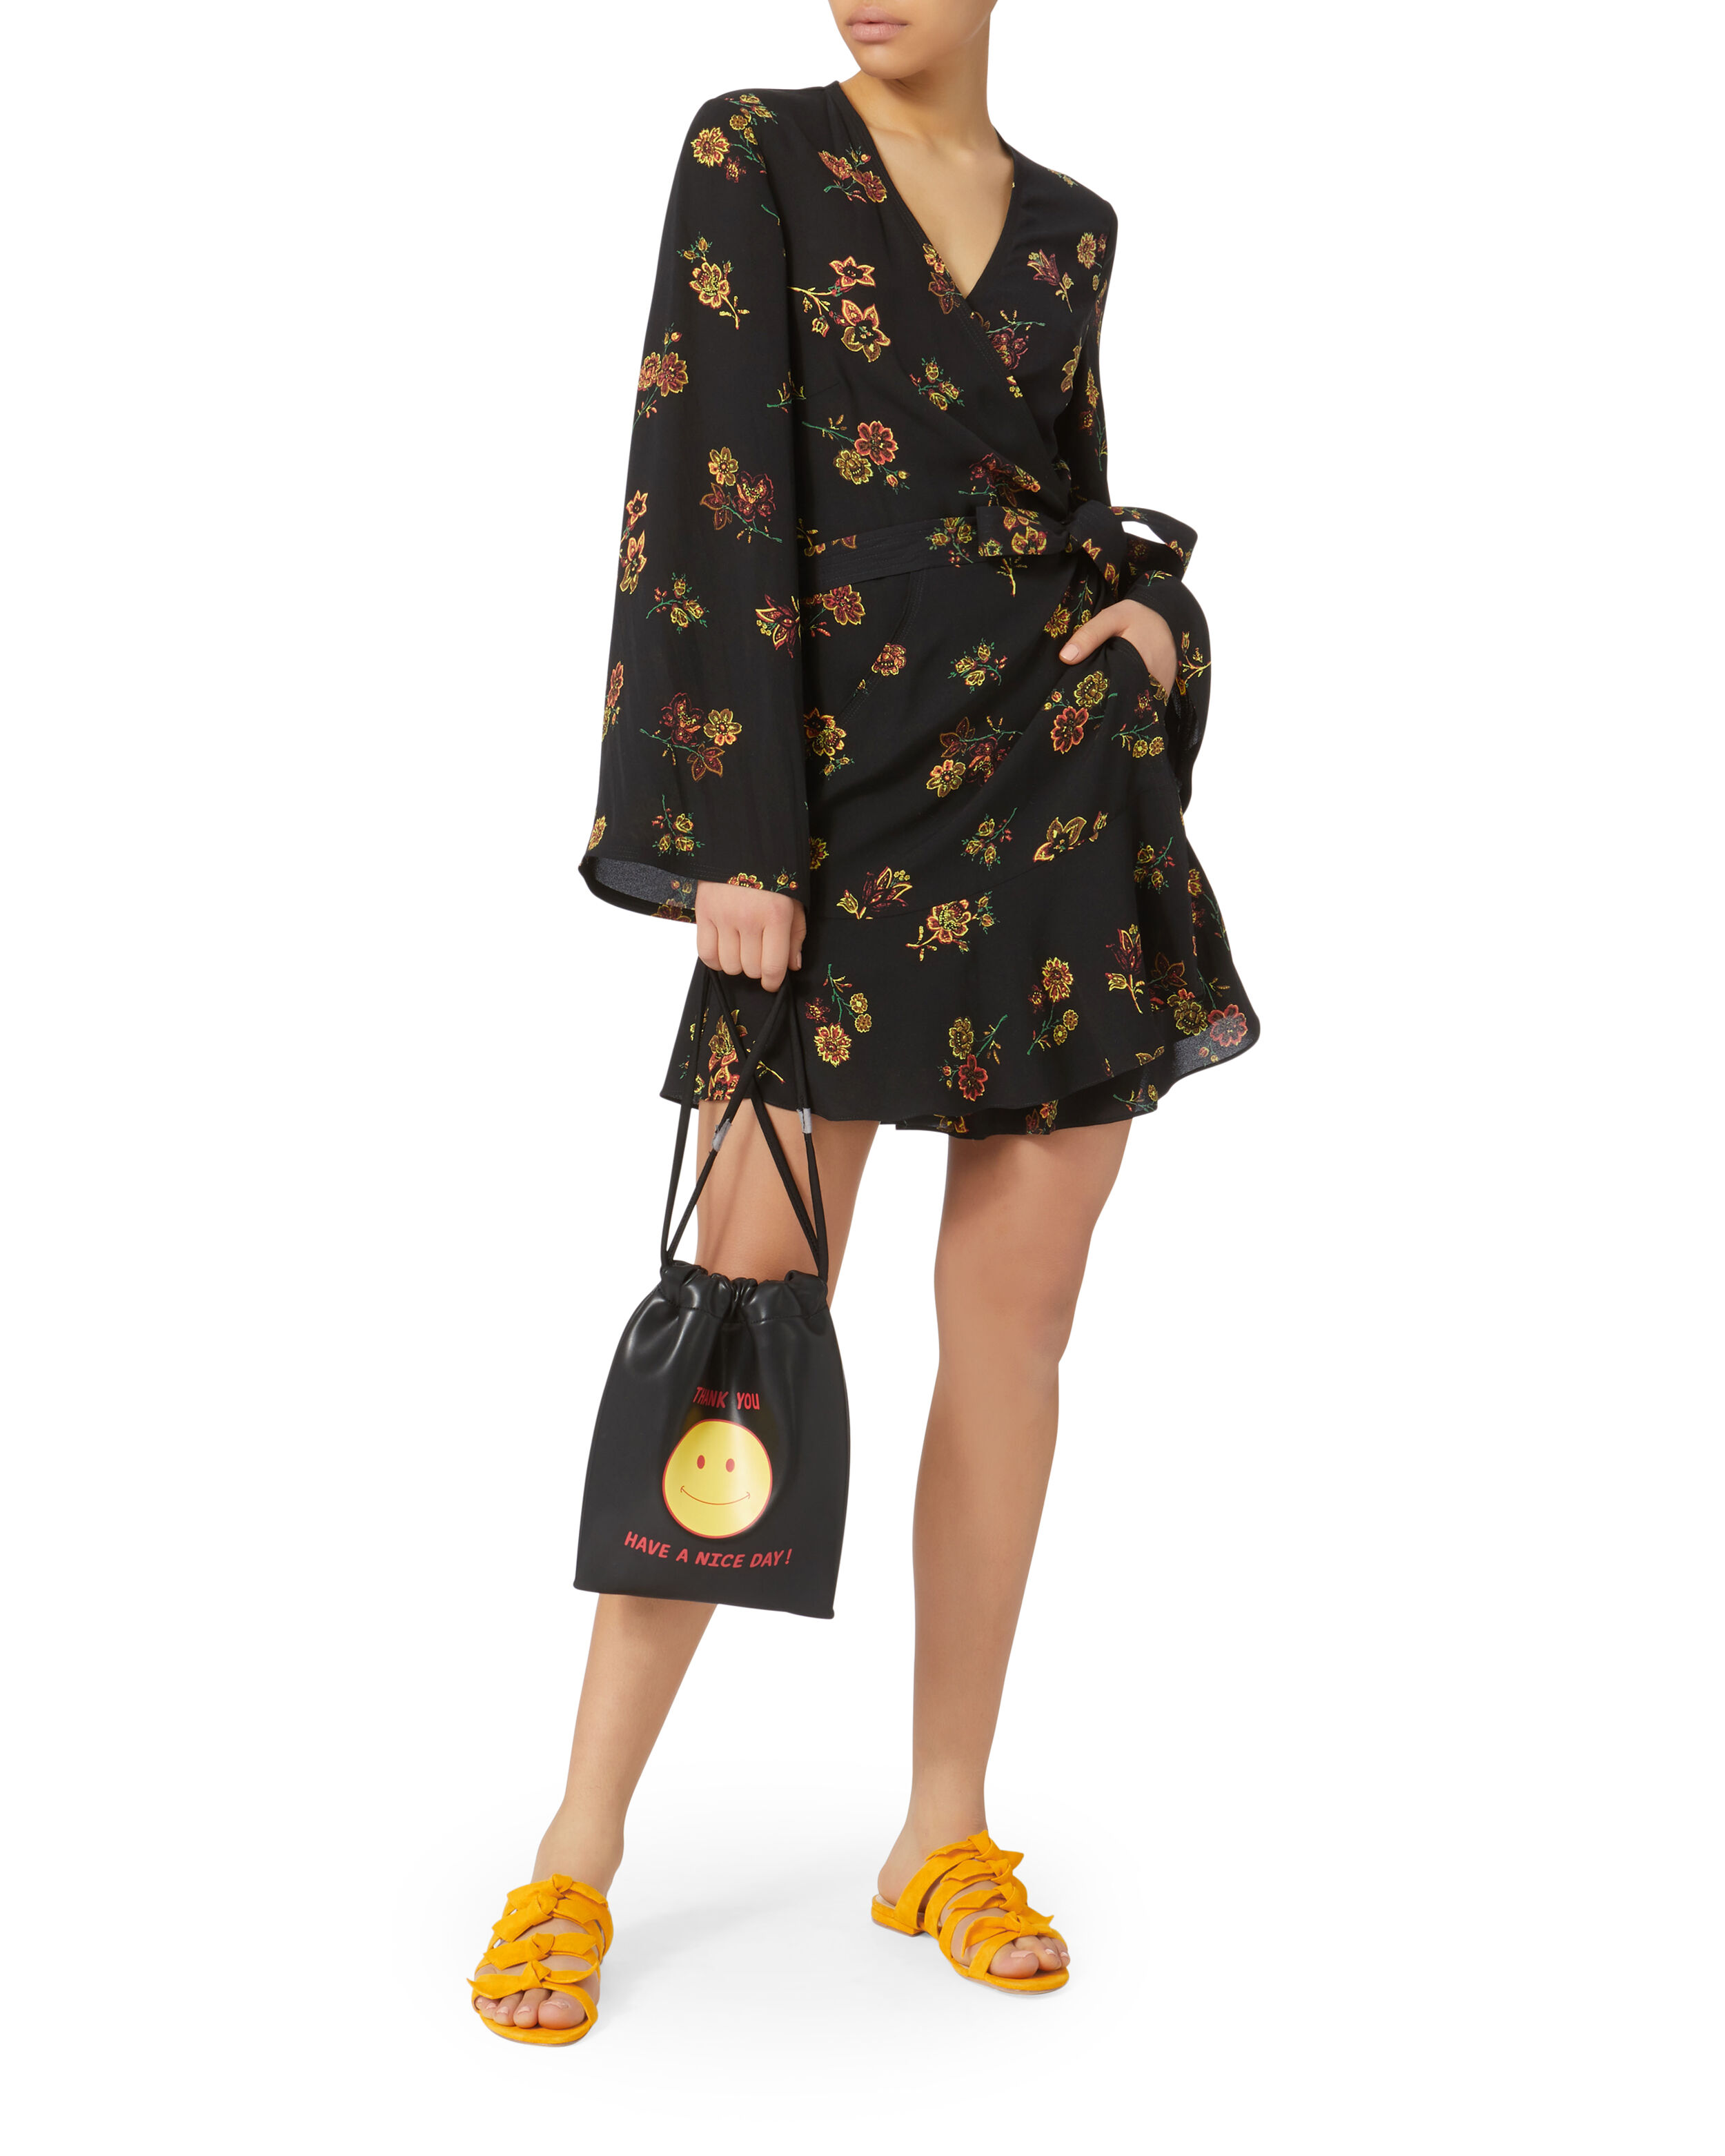 A.L.C. belted wrap dress For Sale Official Site Buy Online Cheap Price SSTExg9Z8